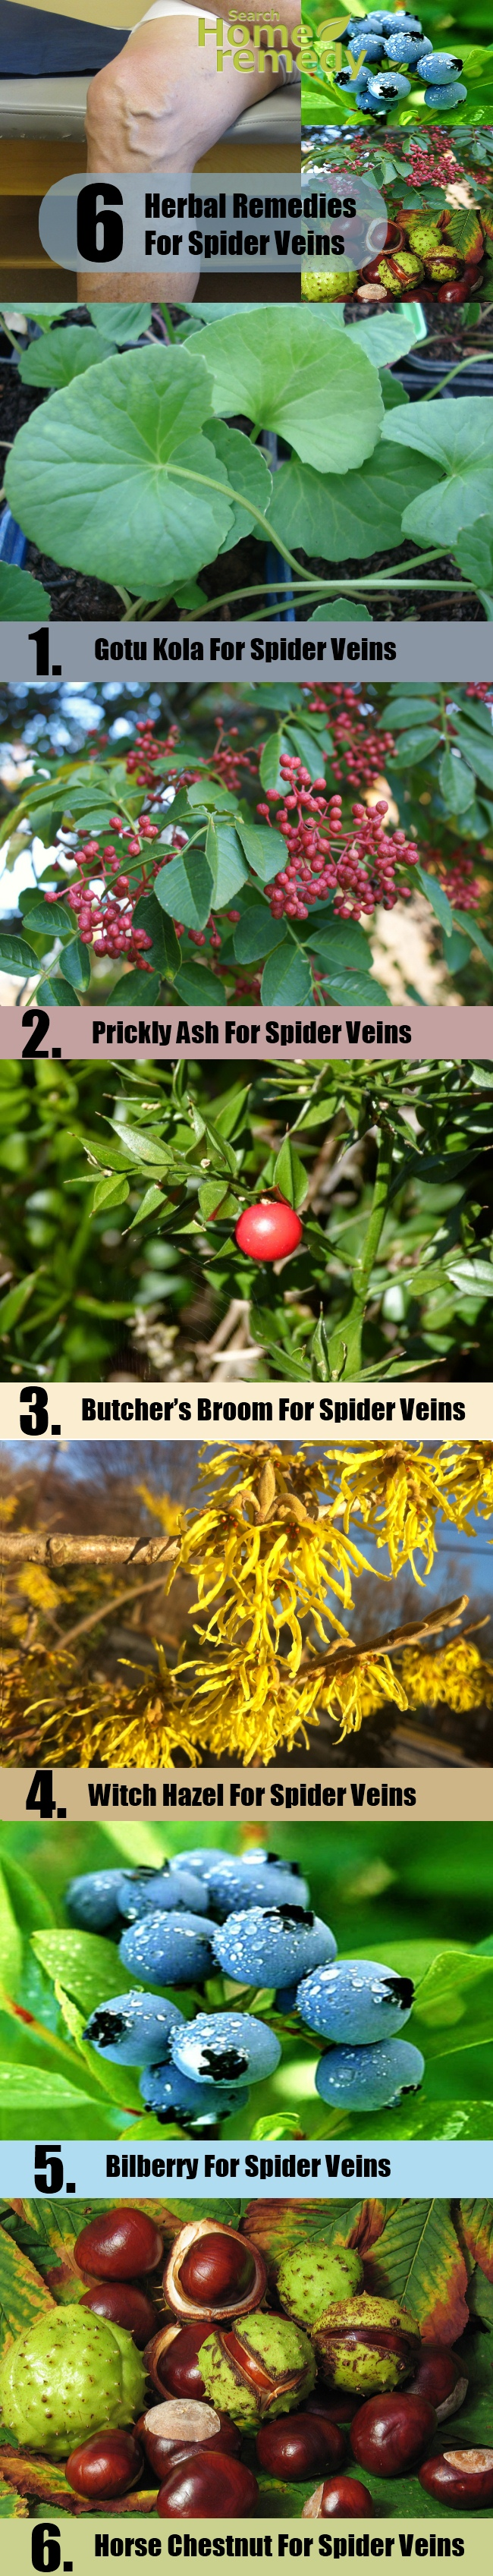 Remedies For Spider Veins